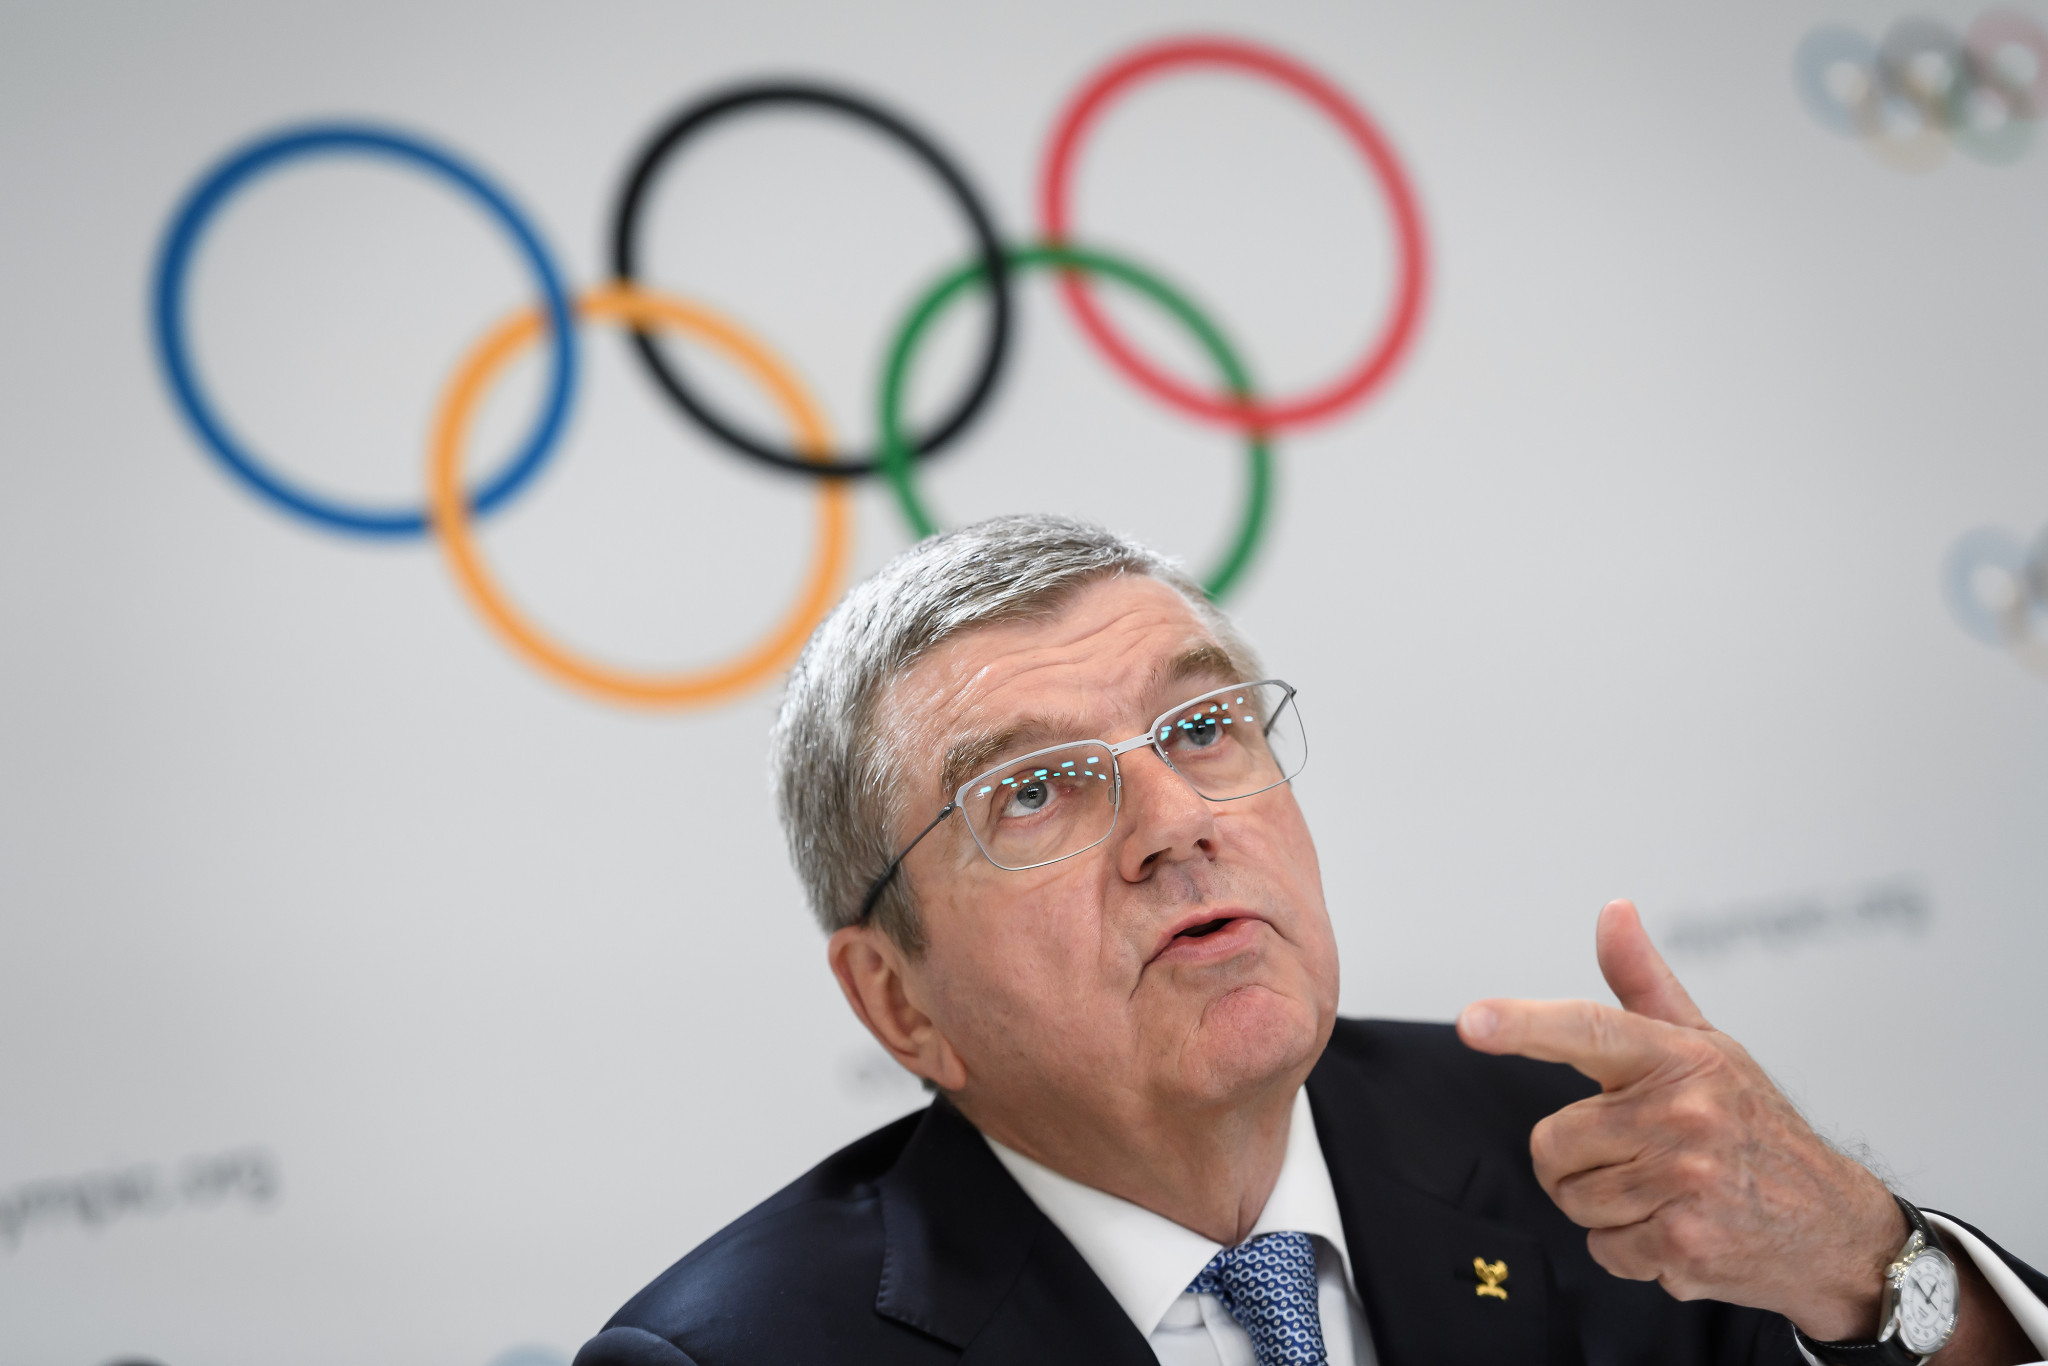 Tamás Aján claims that IOC President Thomas Bach is on the side of the IWF ©Getty Images